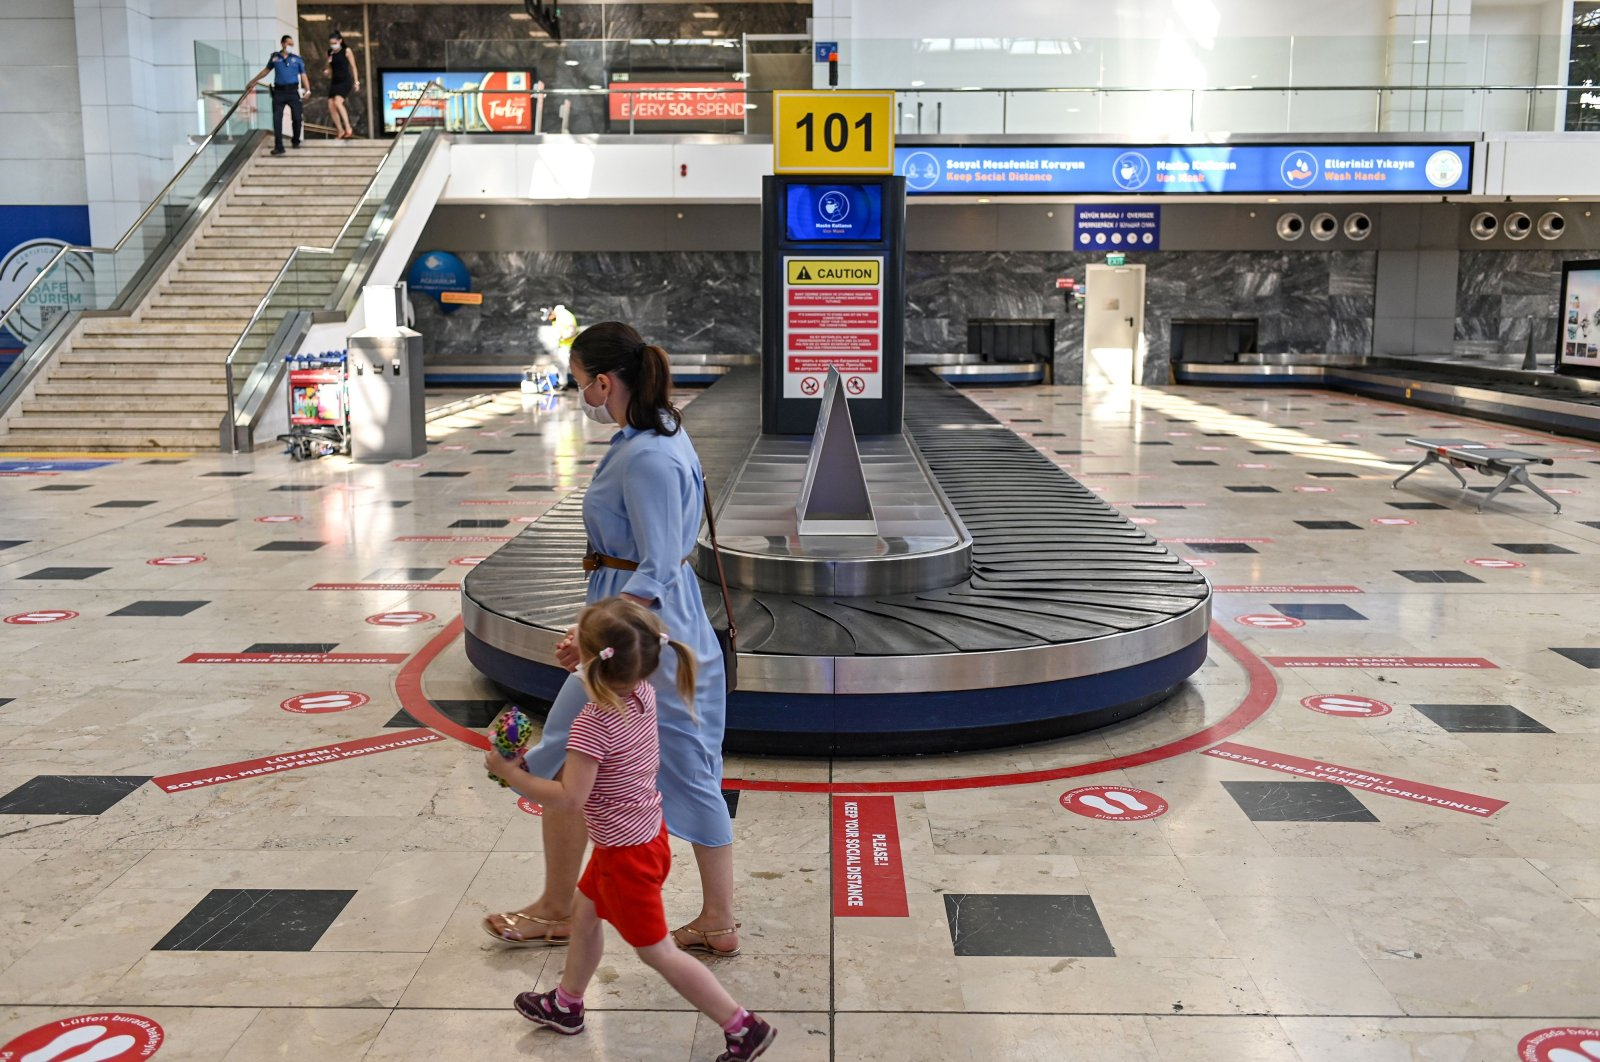 """A woman walks with her daughter beside a luggage belt as stickers on the ground read """"Keep your social distance"""" at Antalya Airport in Antalya, a popular holiday resort city in southern Turkey, June 19, 2020. (AFP Photo)"""